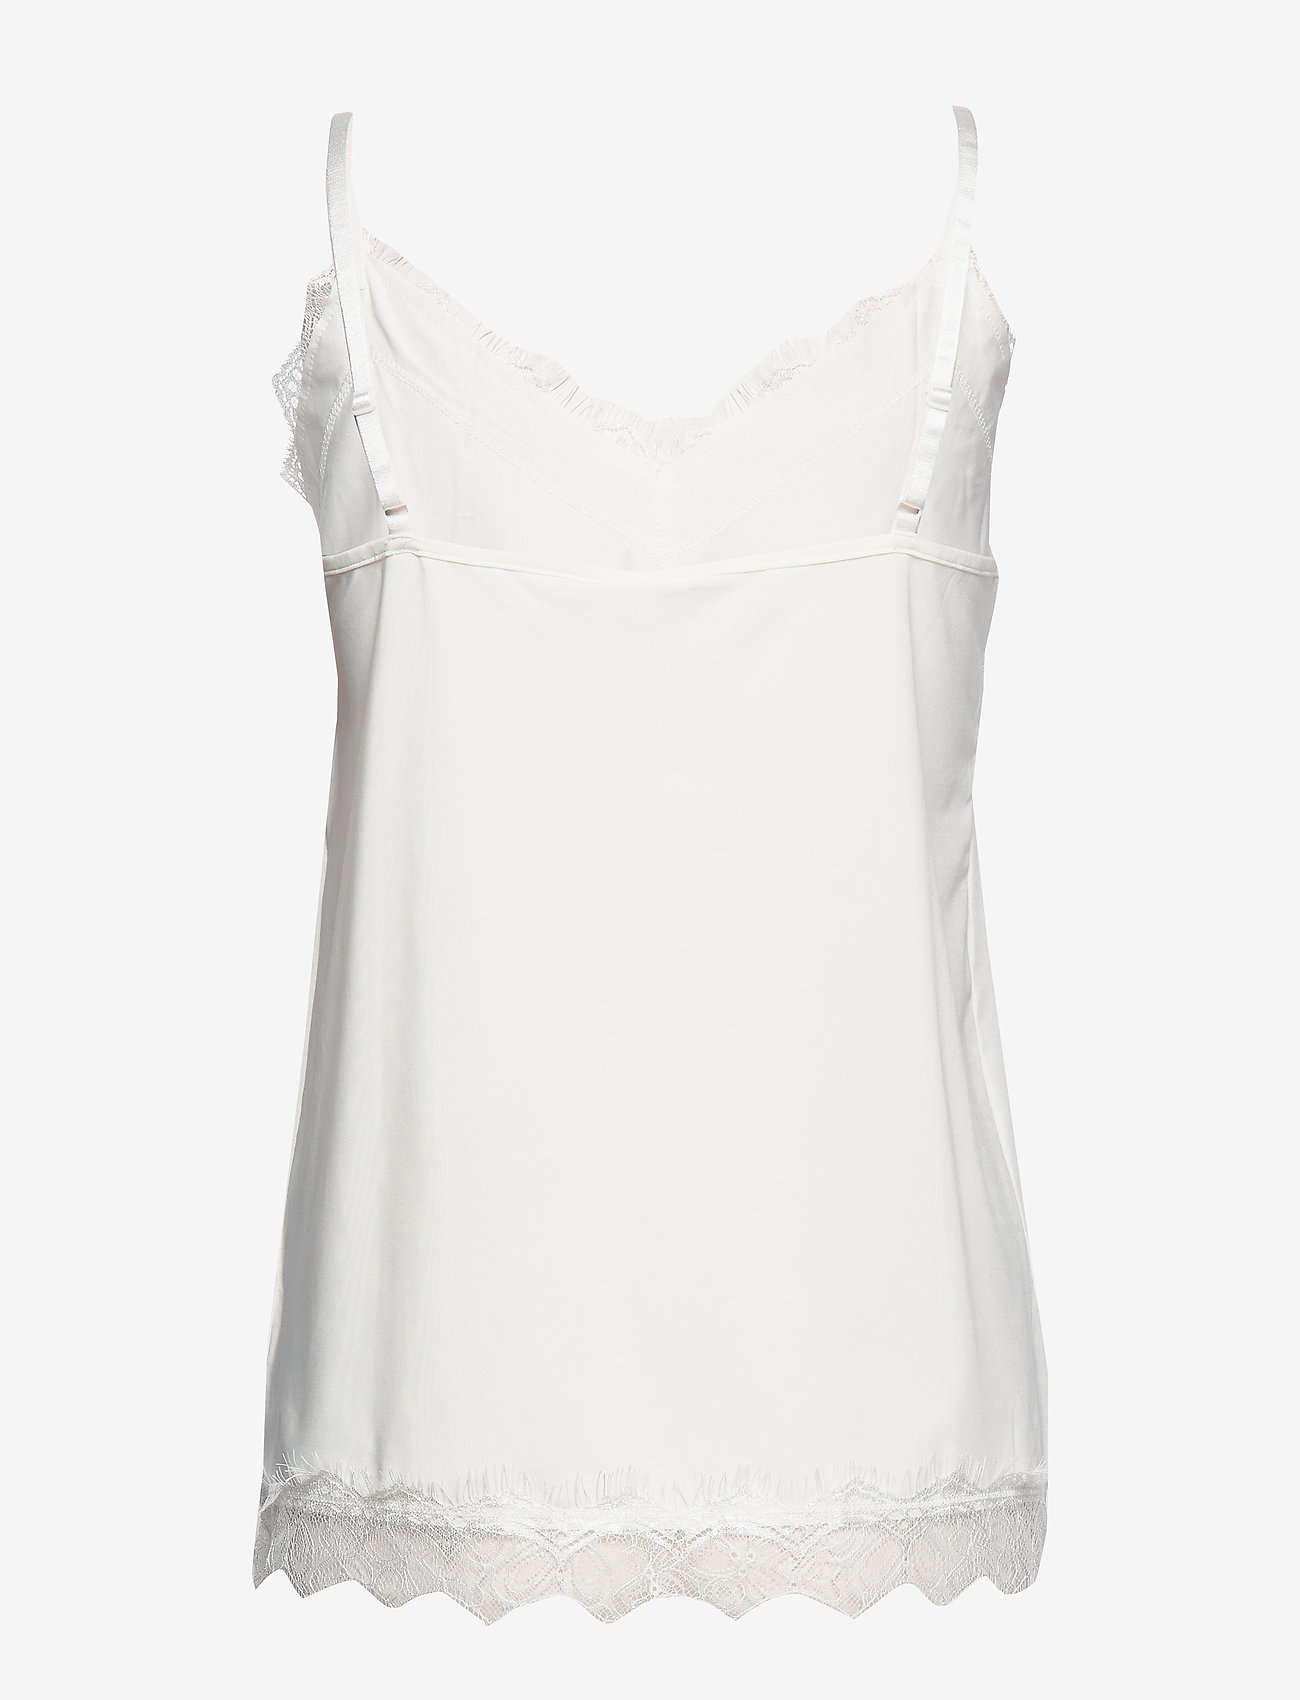 FREE/QUENT - FQBICCO-ST - Ærmeløse toppe - offwhite 11-4800 - 1